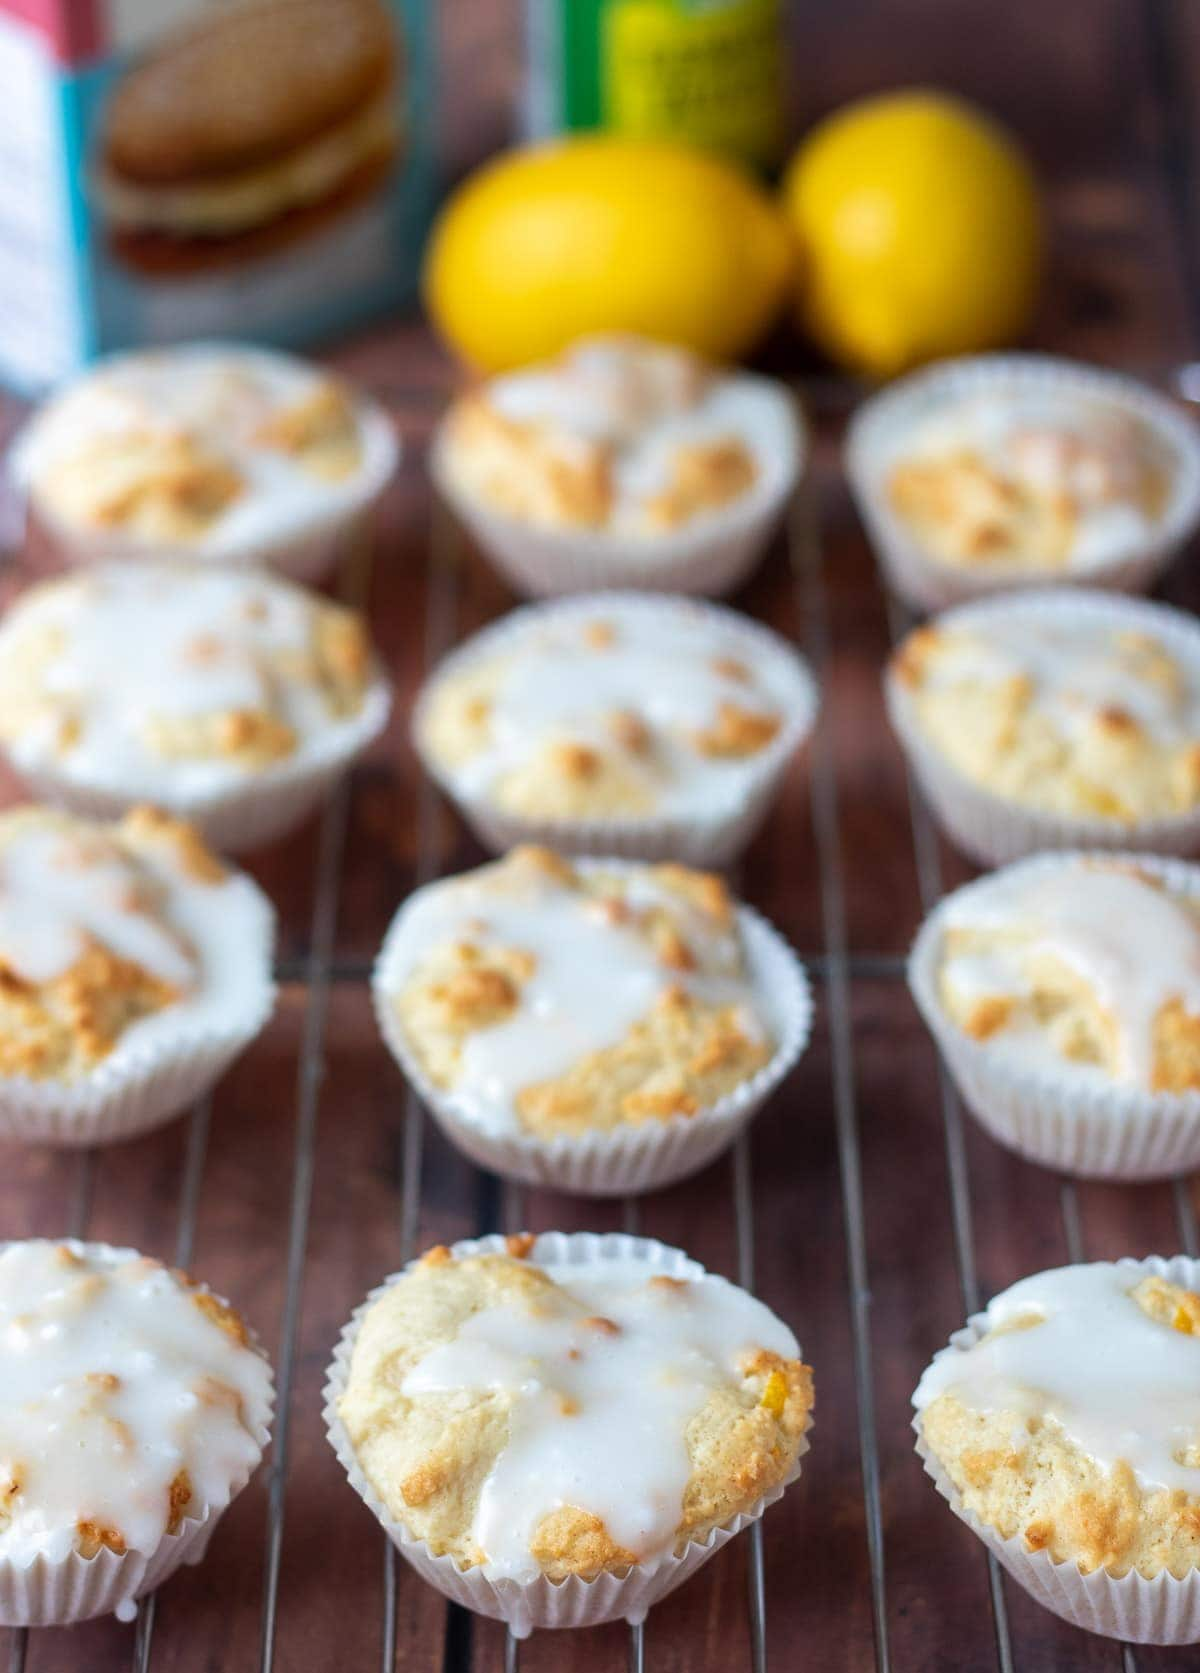 A wire rack of twelve iced easy lemon cupcakes. Two lemons and other ingredients boxes in the background.